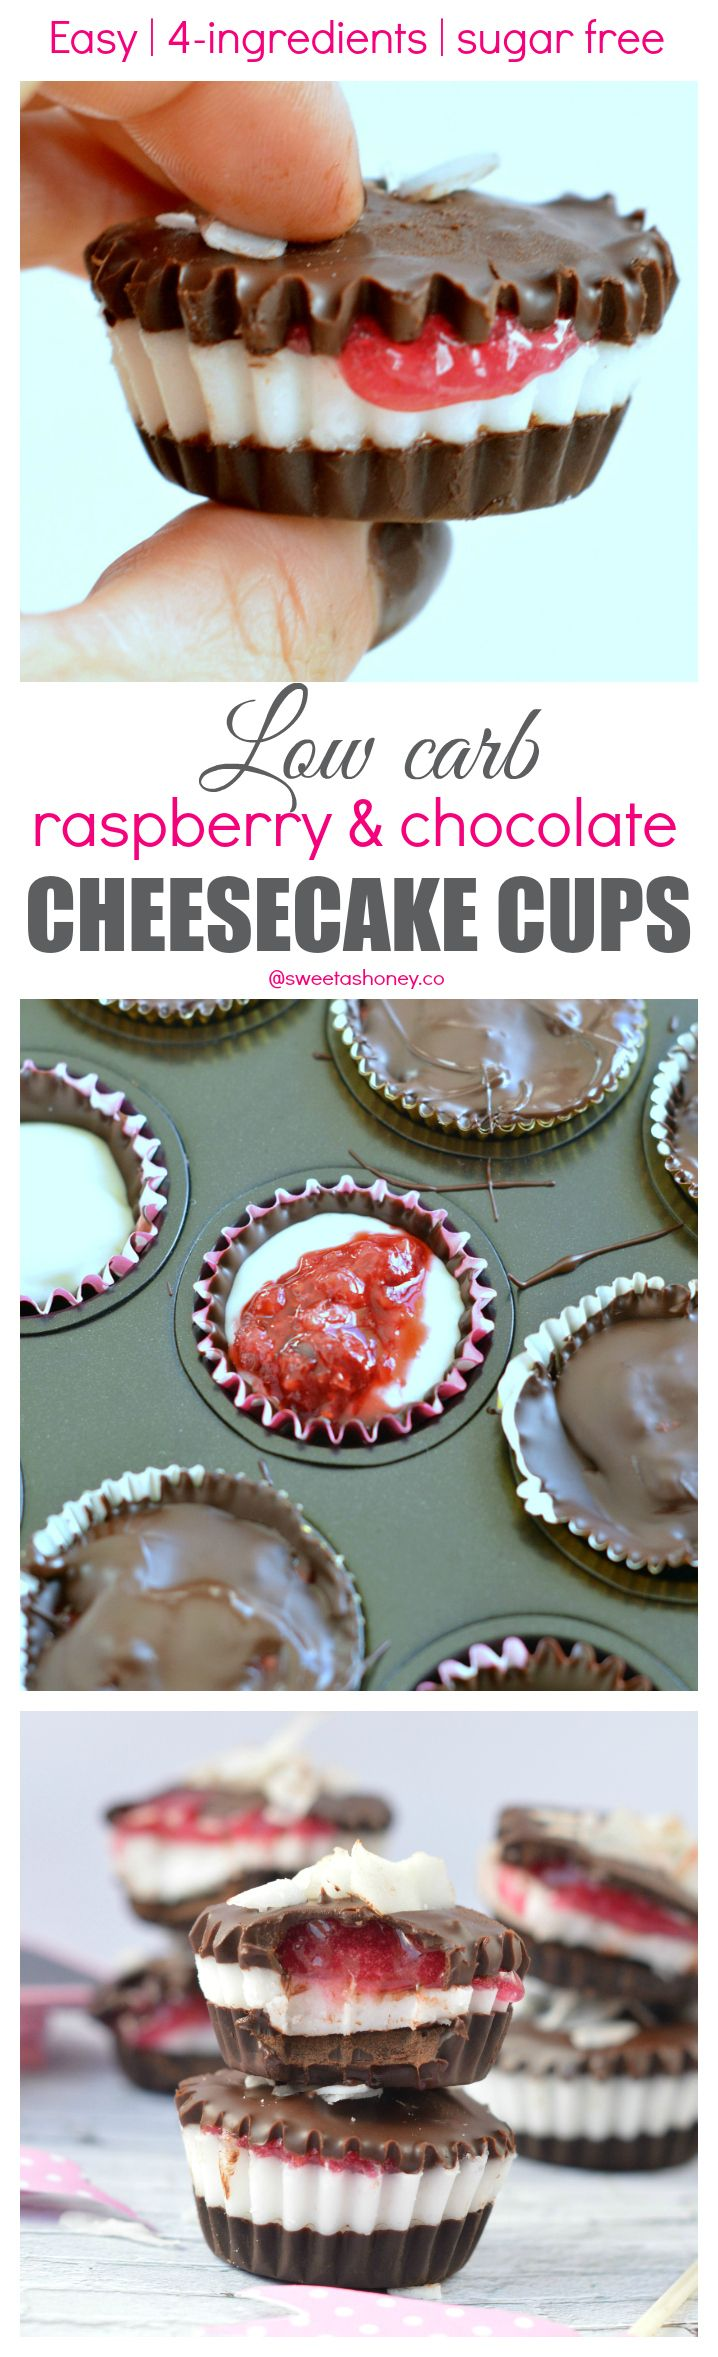 Low Carb Chocolate Cheesecake Cups with Sugar free Raspberry Jam filling. A great treat for diabetic 100 % Sugar free.